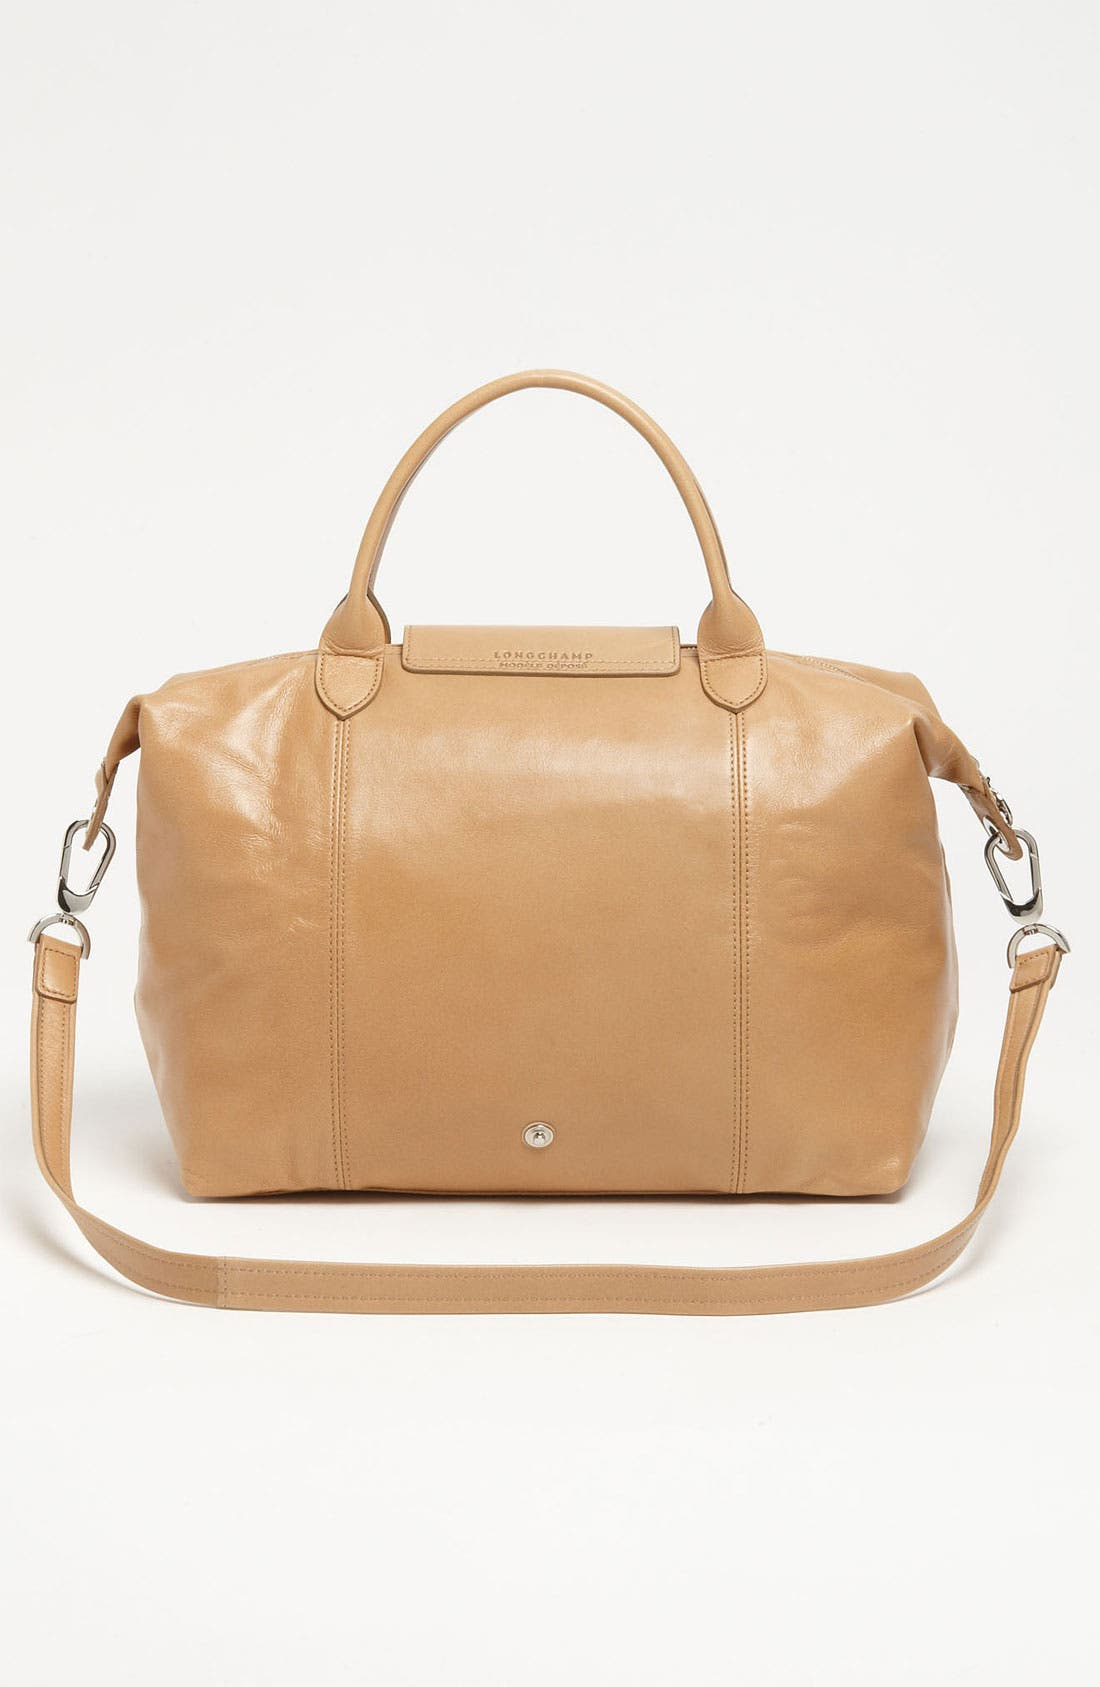 Medium 'Le Pliage Cuir' Leather Top Handle Tote,                             Alternate thumbnail 42, color,